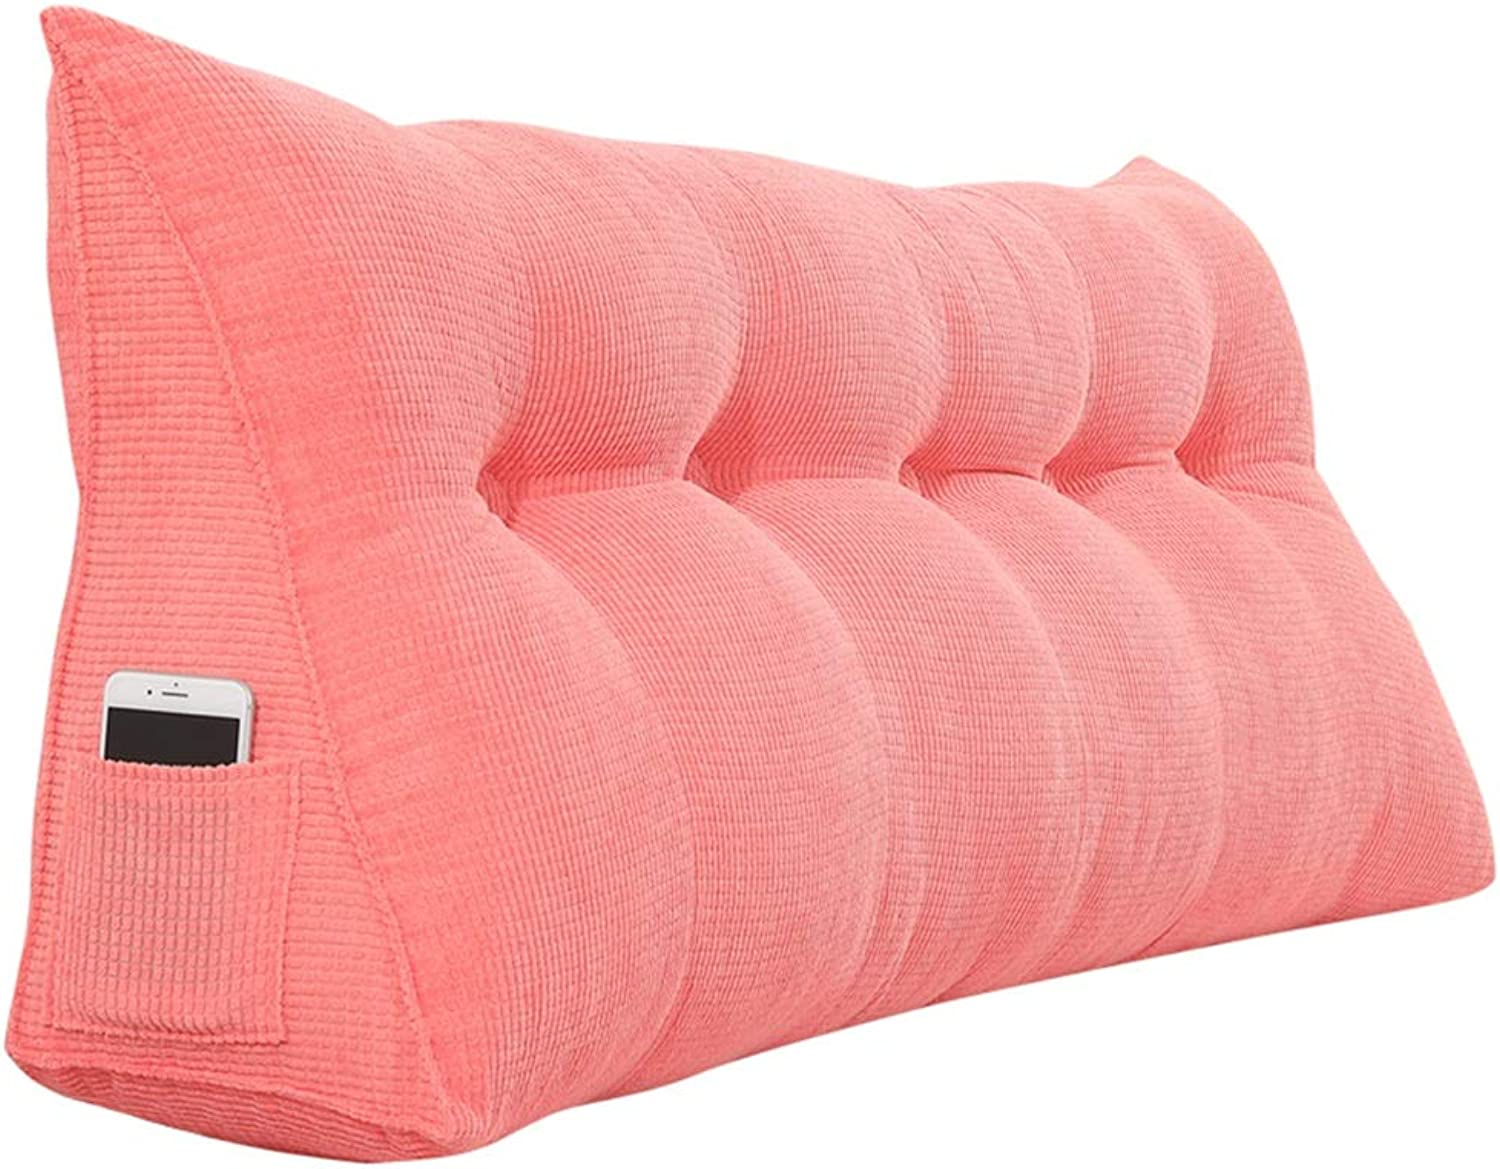 LXLIGHTS Headboard Bedside Cushion Backrest Waist Pad Bed Wedge Bay Window Sofa Pillows, Easy to Install Removable (color   Pink, Size   60  50  22cm)